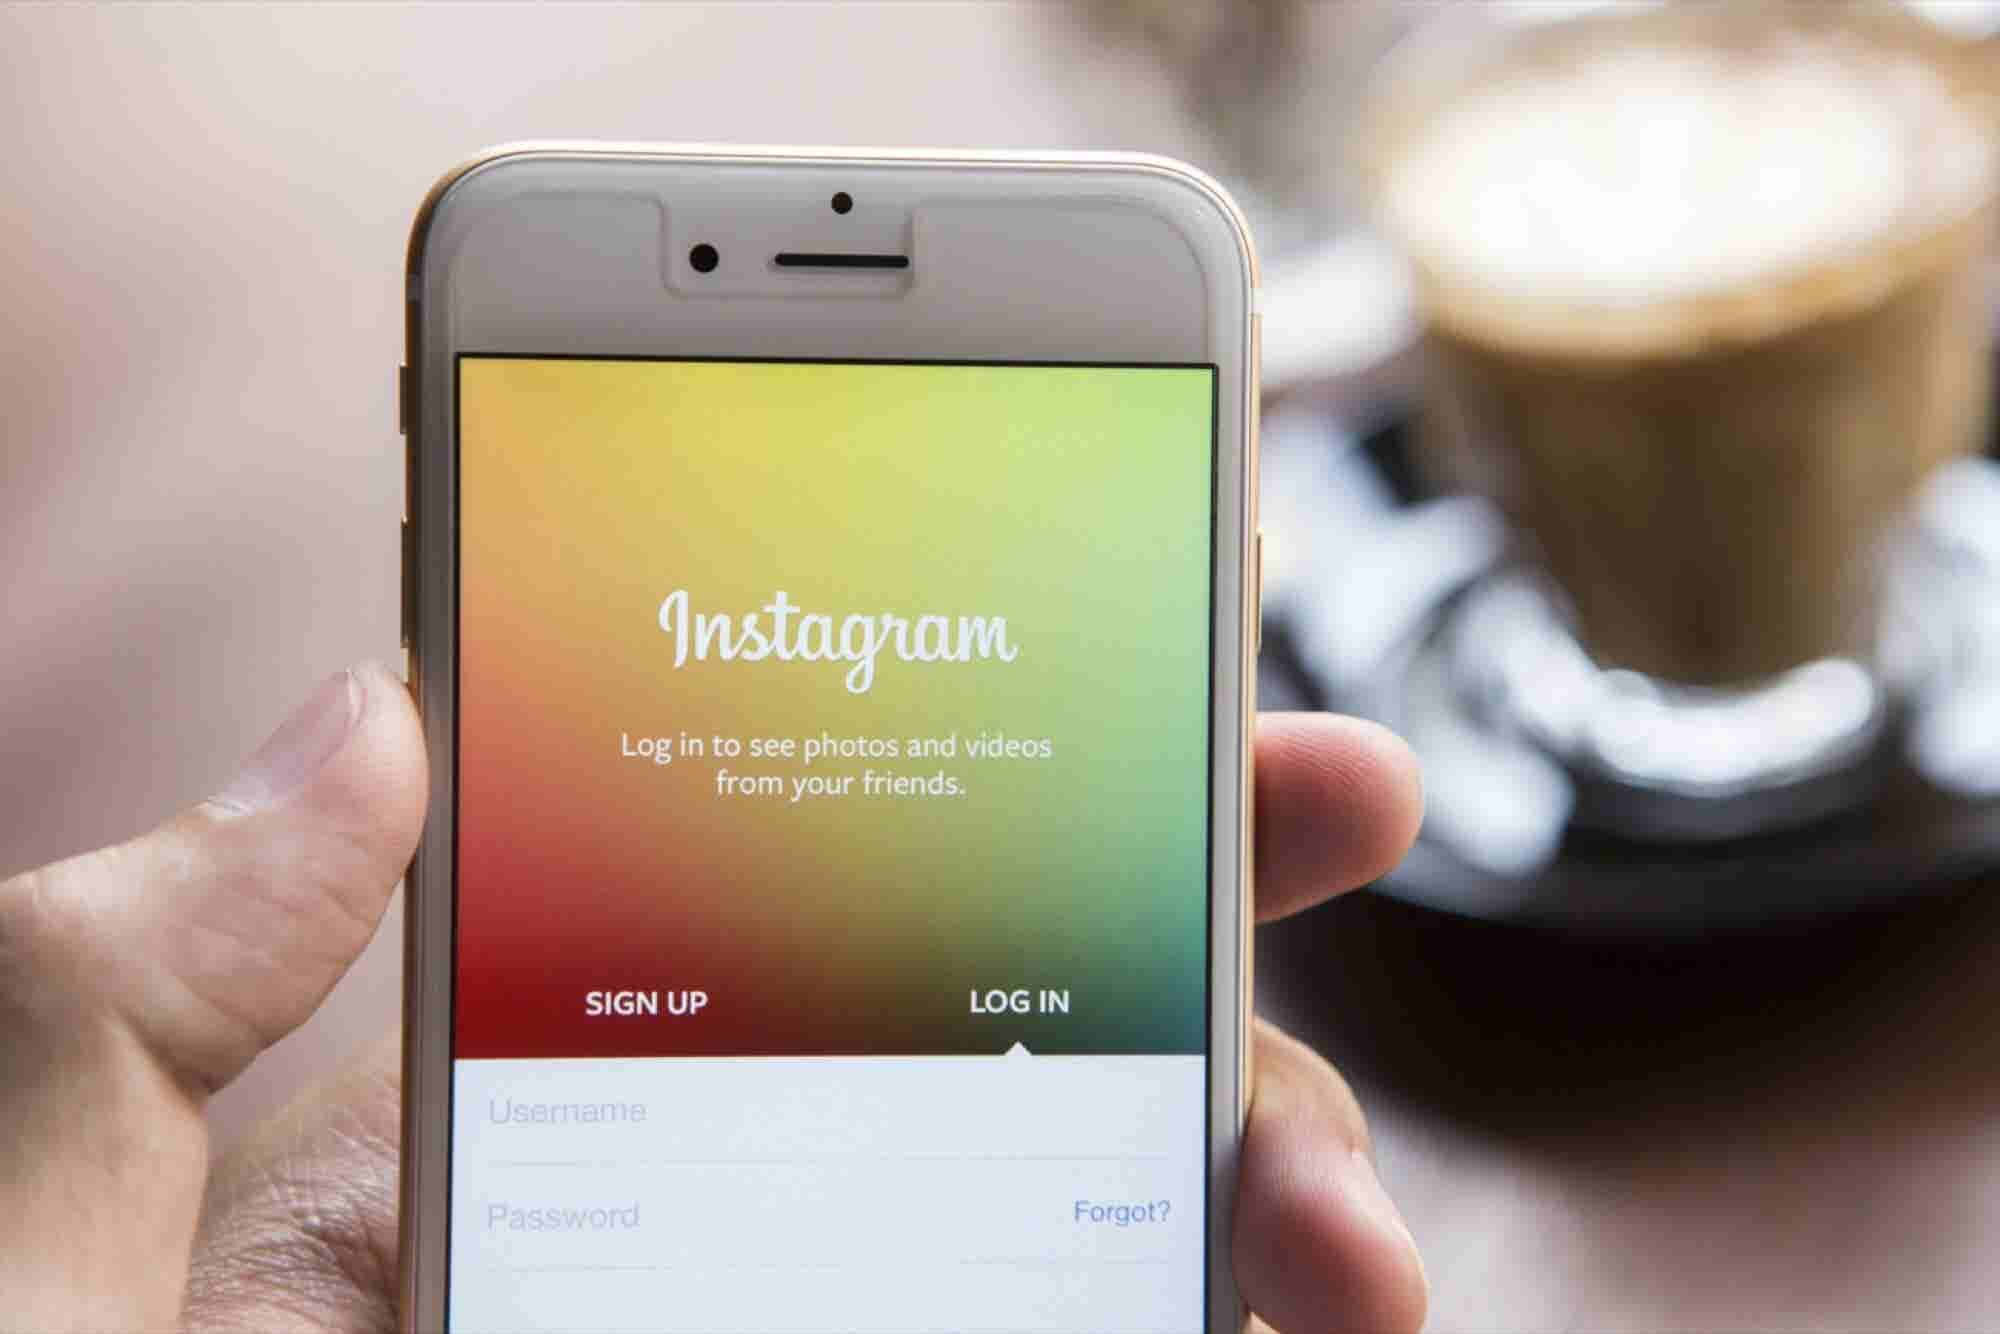 Instagram CEO Tips Hat to Snapchat for 'Stories' Feature